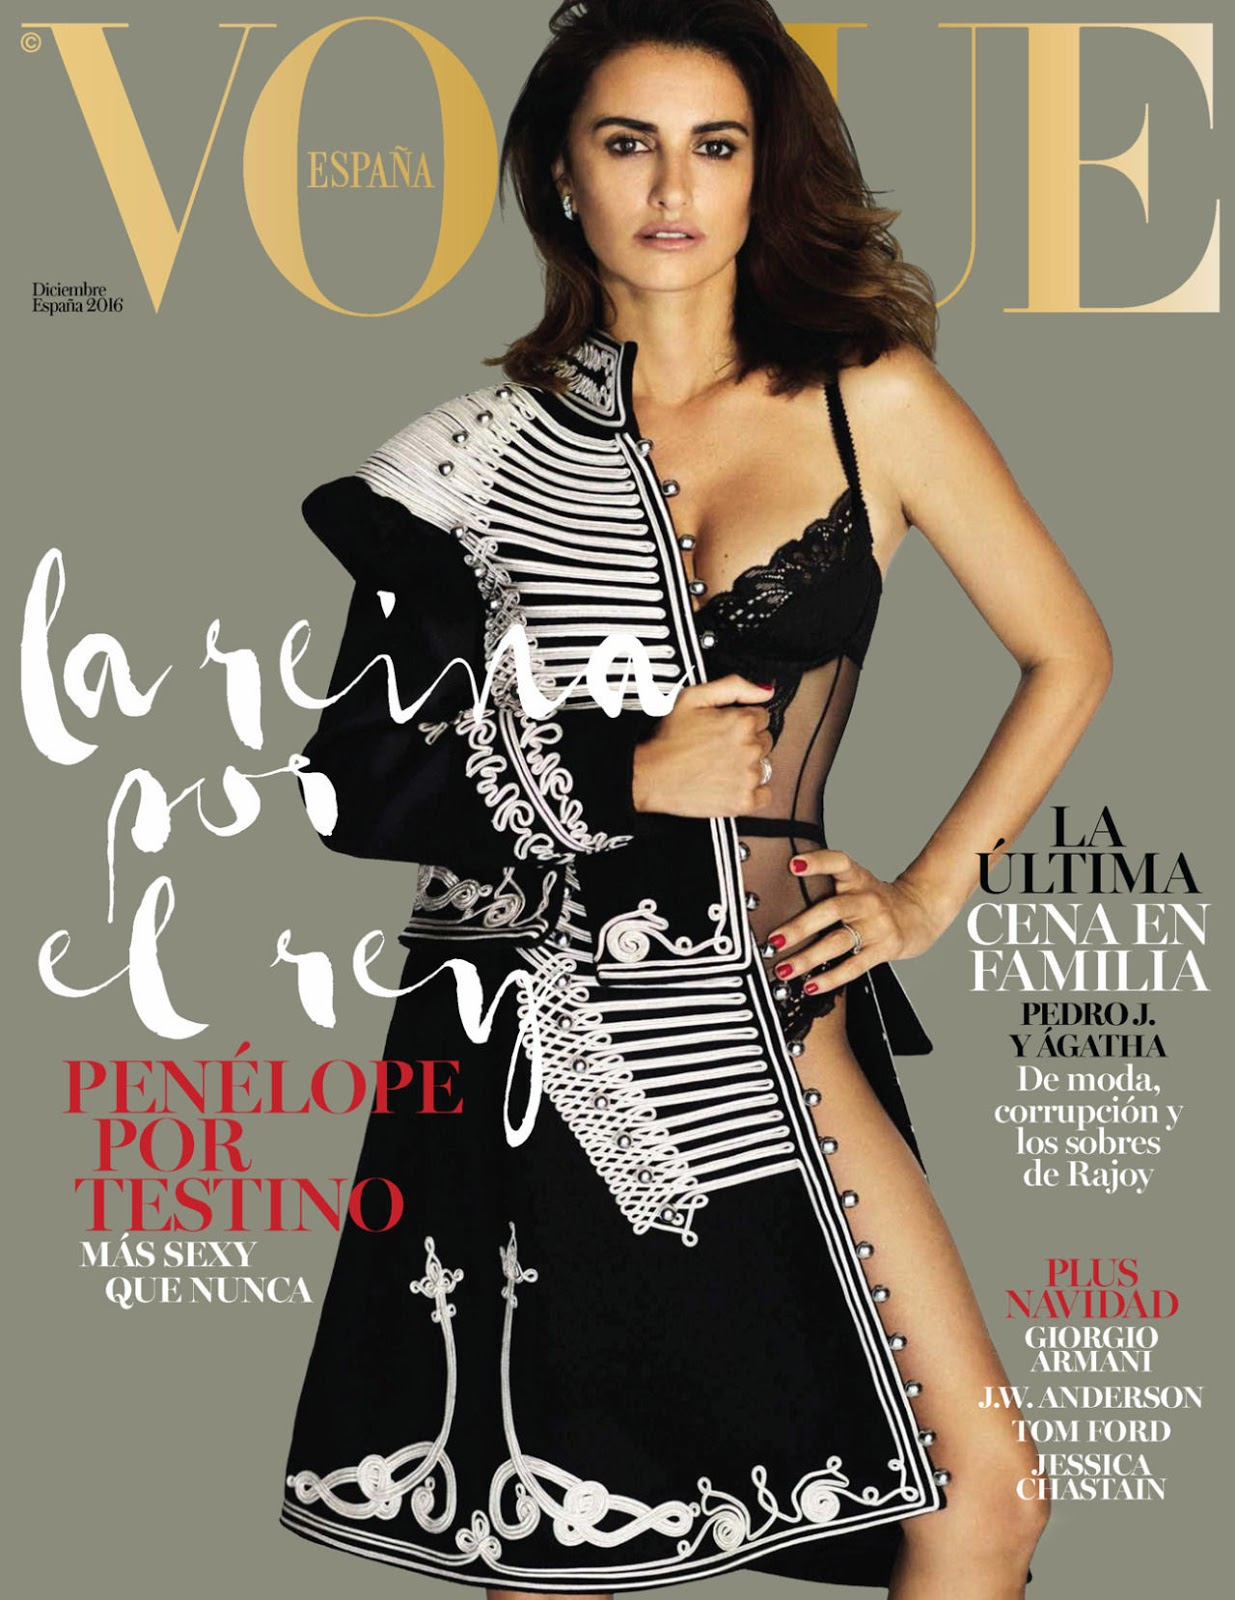 Buy Walton binx vogue spain may picture trends